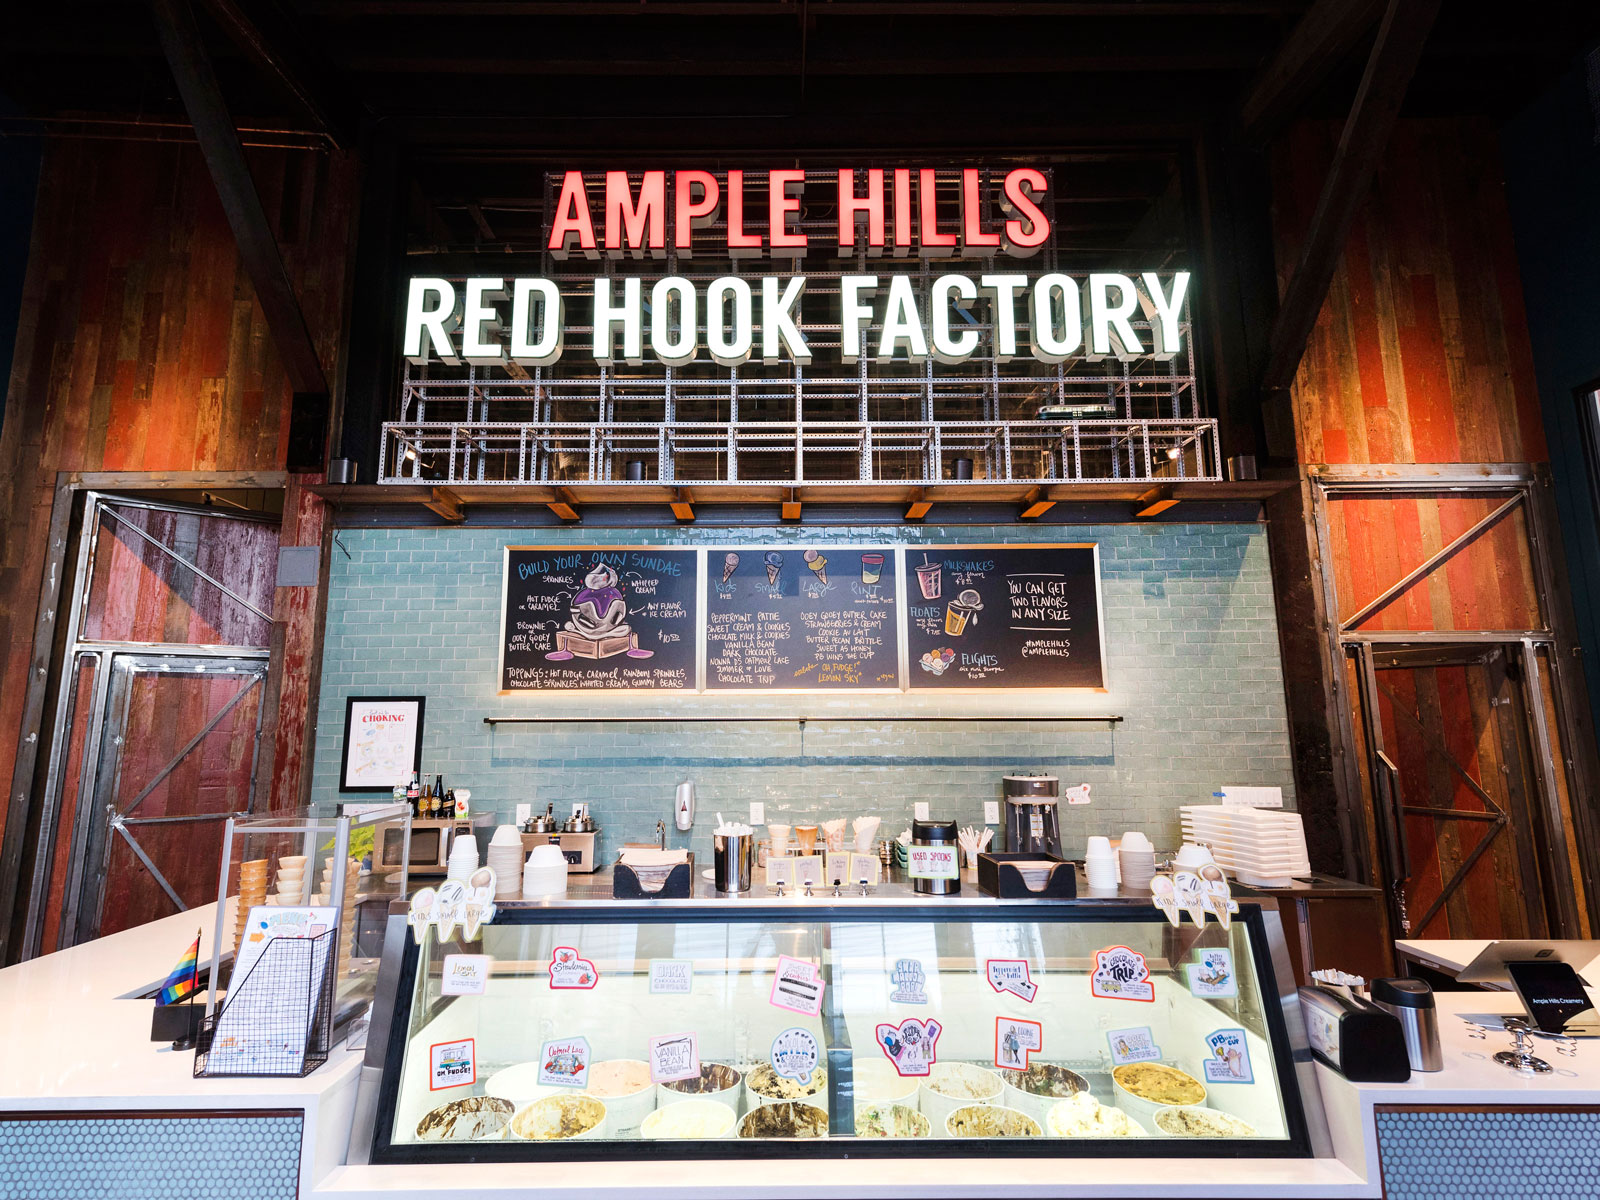 Ample Hills Red Hook Factory